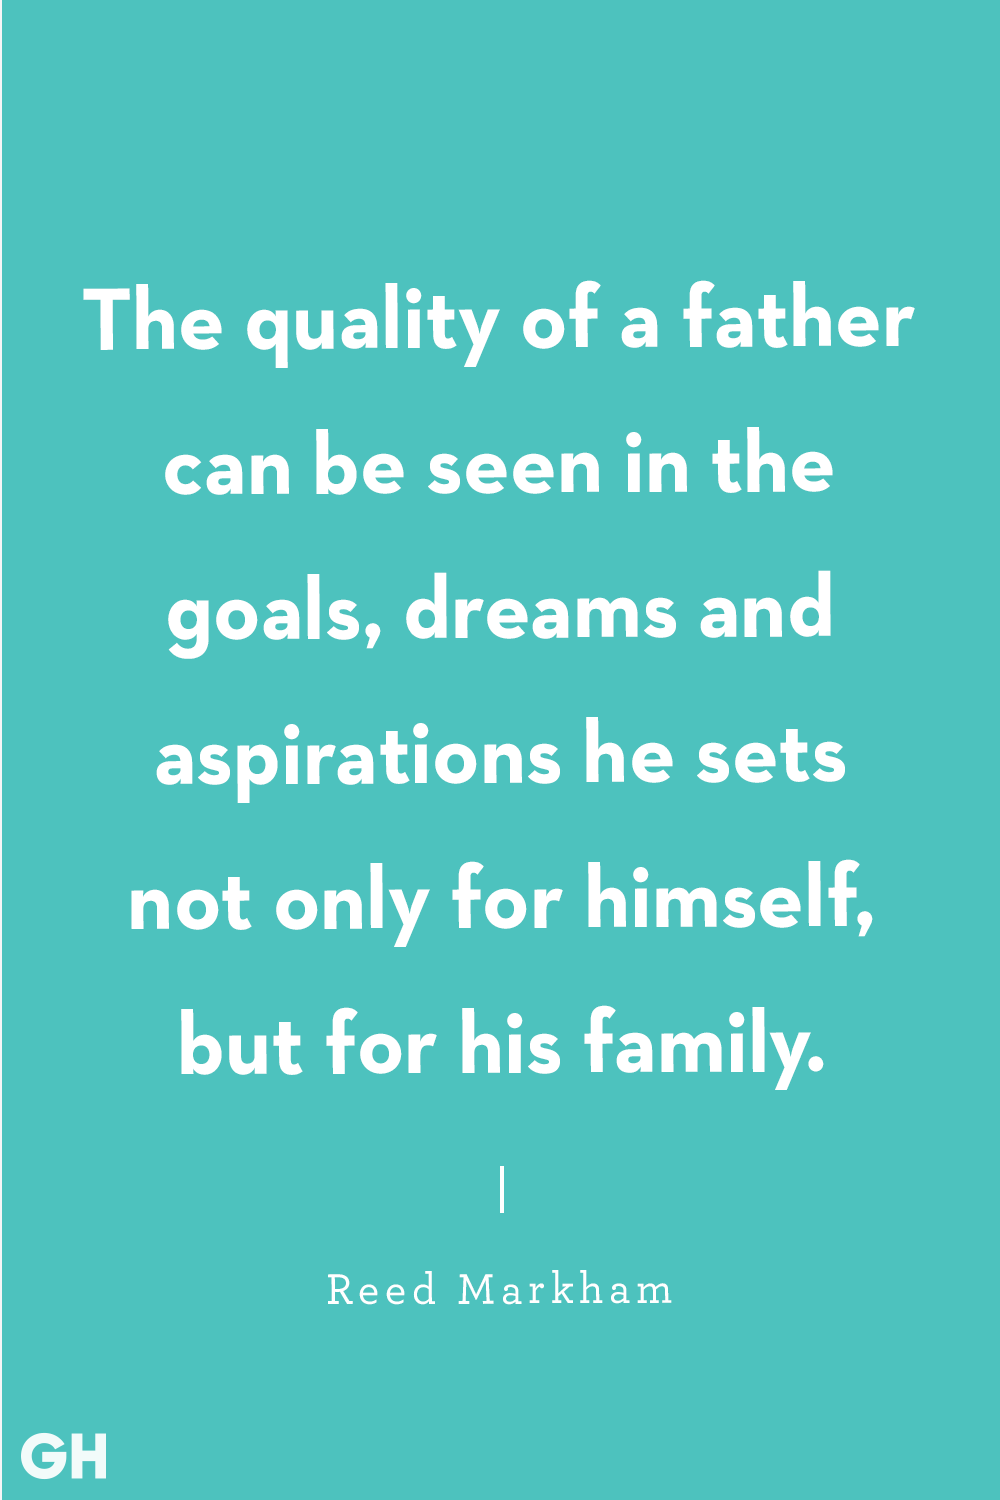 Father's Day Quotes Reed Markham